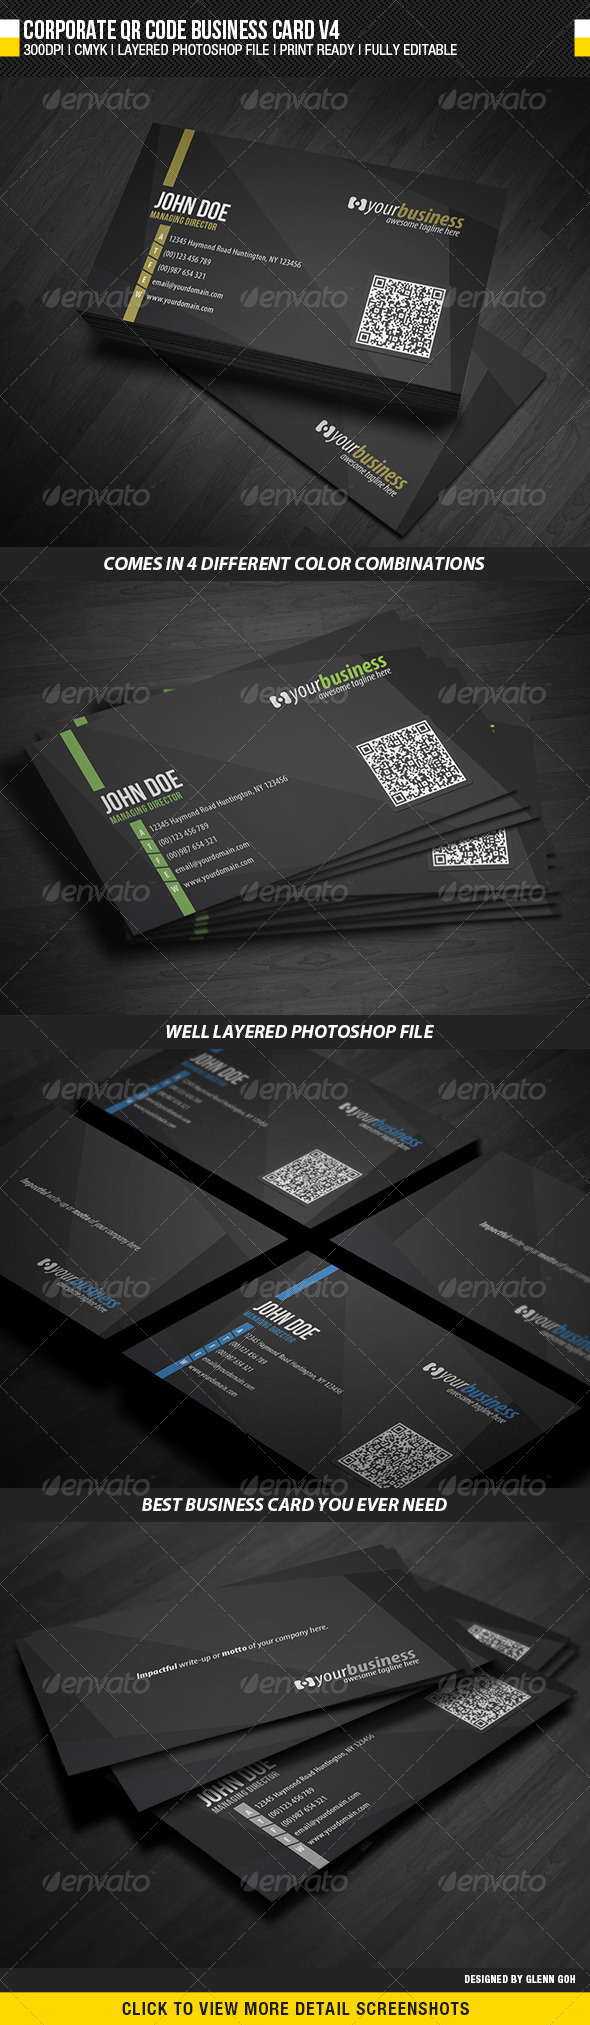 Corporate QR Code Business Card V4 - Corporate Business Cards